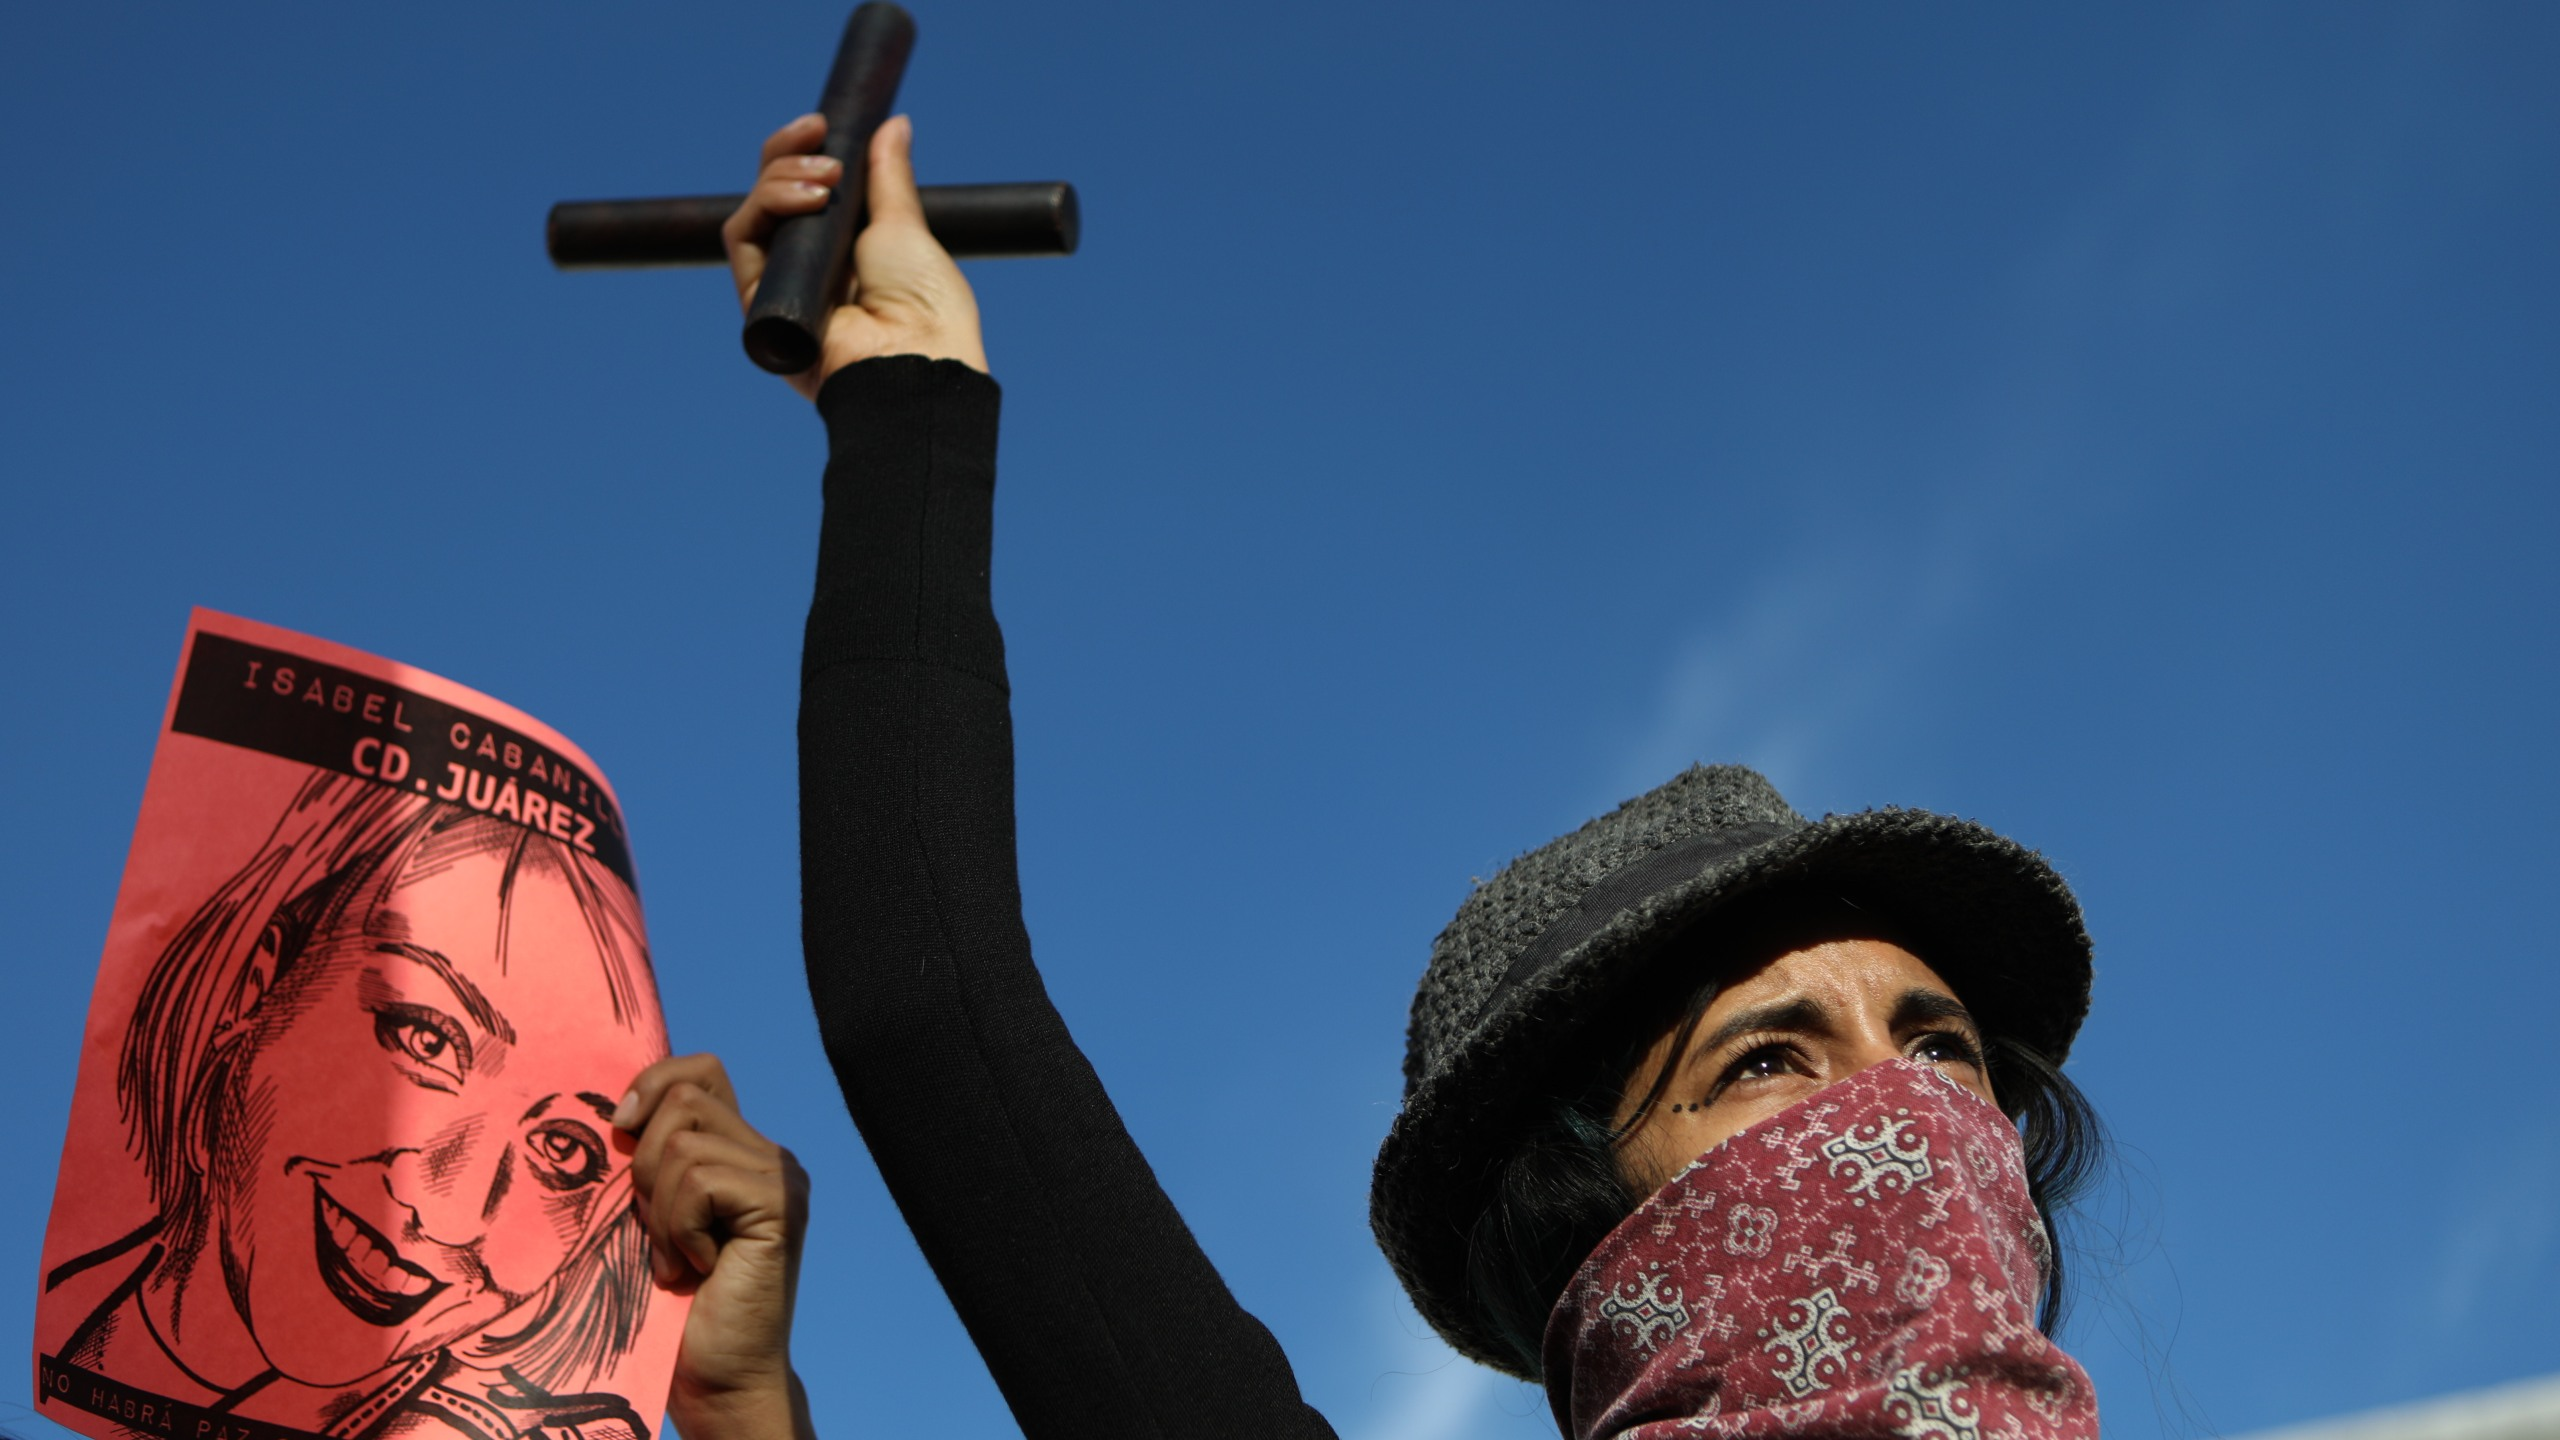 A woman gestures next to an image of slain 26-year-old artist, activist and feminist Isabel Cabanillas de la Torre as she joins demonstrators from Mexico and the U.S. to protest against femicides in Ciudad Juarez and Cabanillas de la Torre's murder, in Ciudad Juarez, in the state of Chihuahua, Mexico, on Jan. 25, 2020. (HERIKA MARTINEZ / AFP)